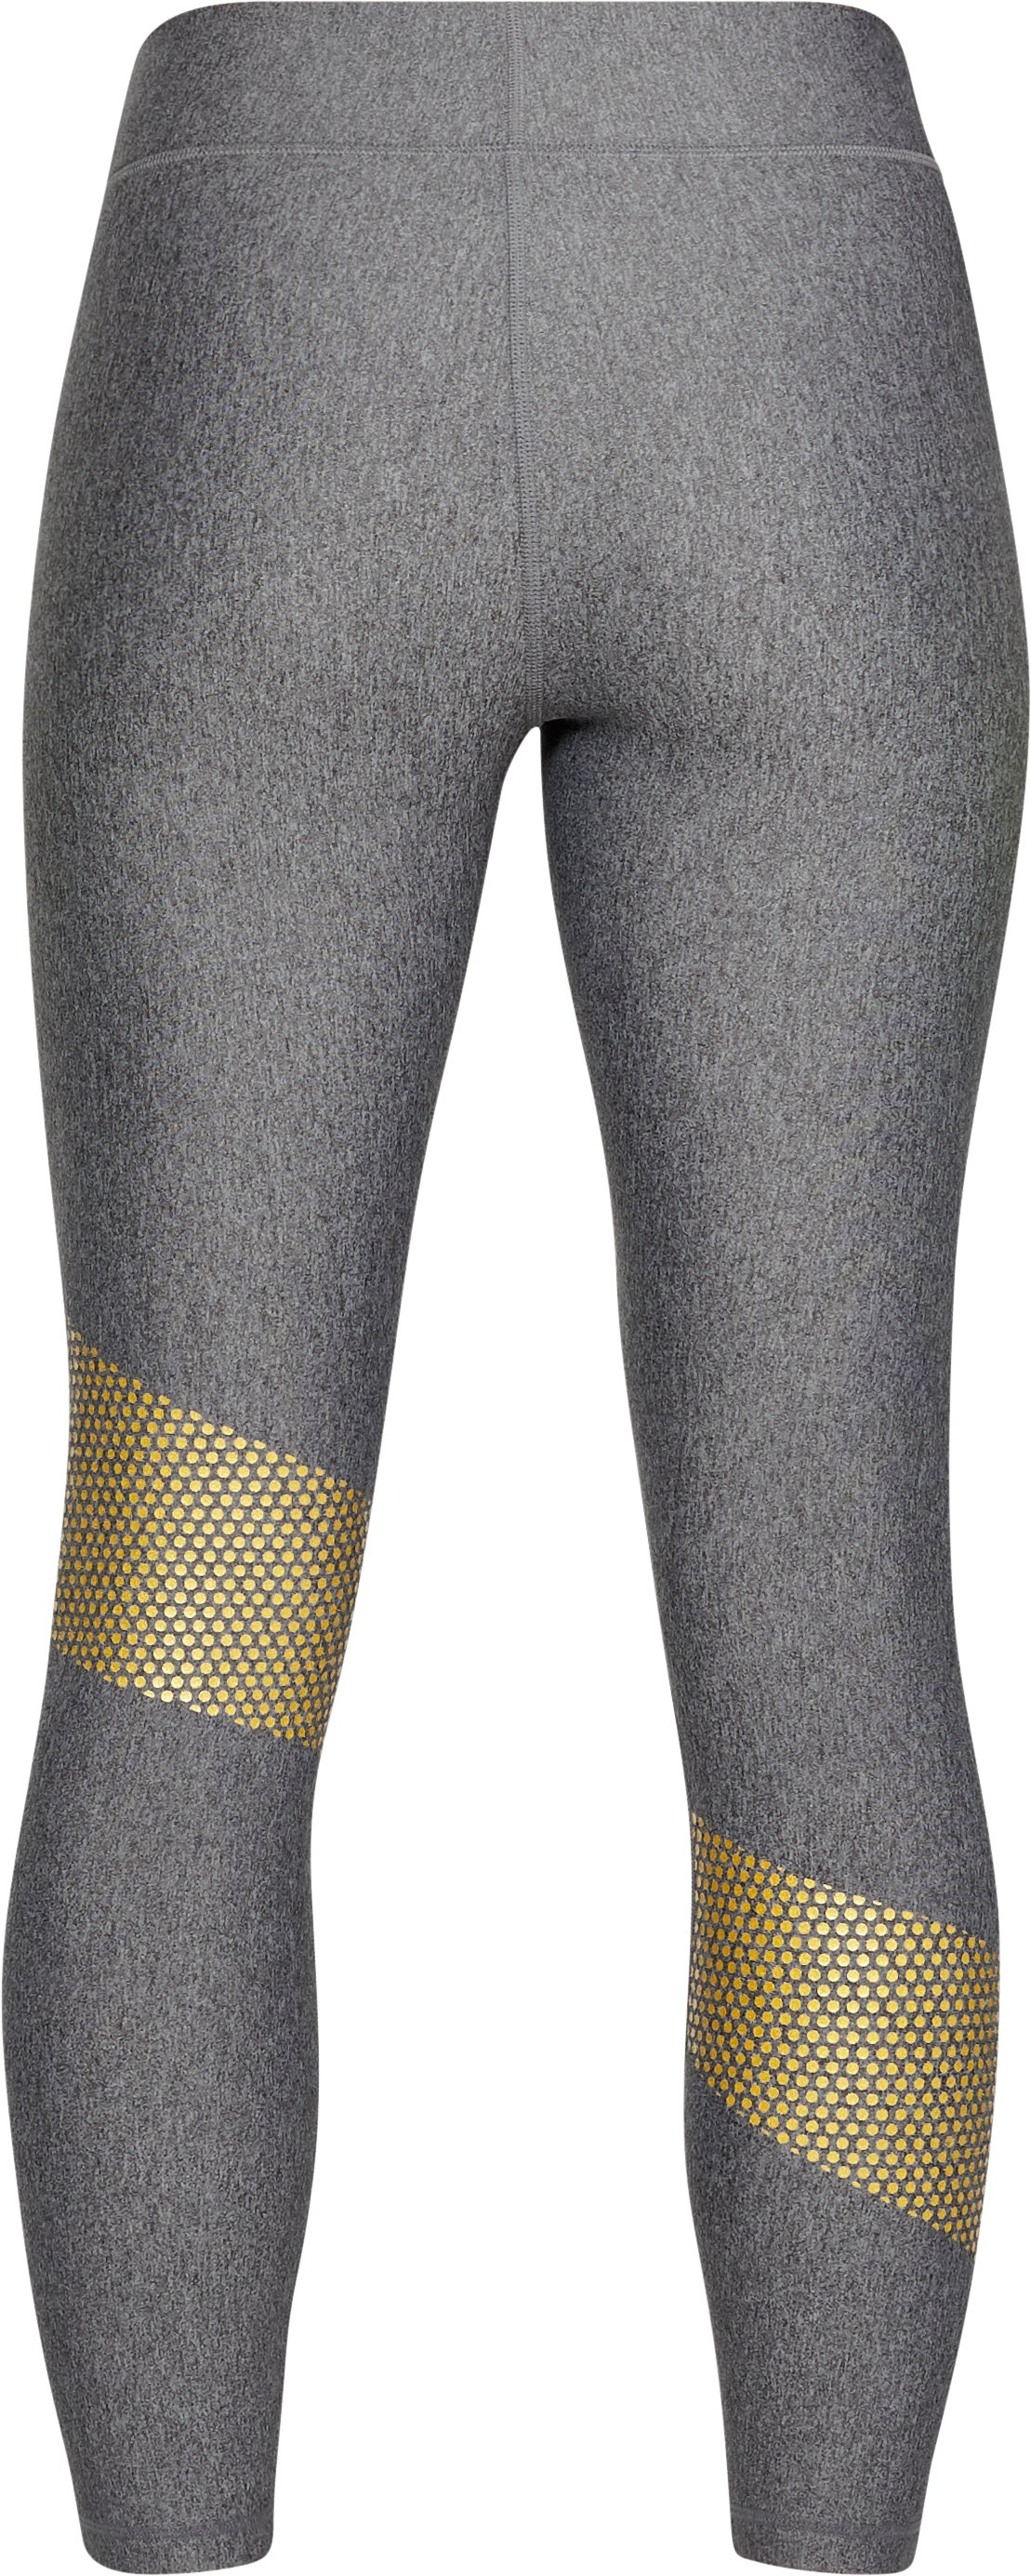 Women's HeatGear® Armour Graphic Ankle Crop, CHARCOAL LIGHT HEATHER,